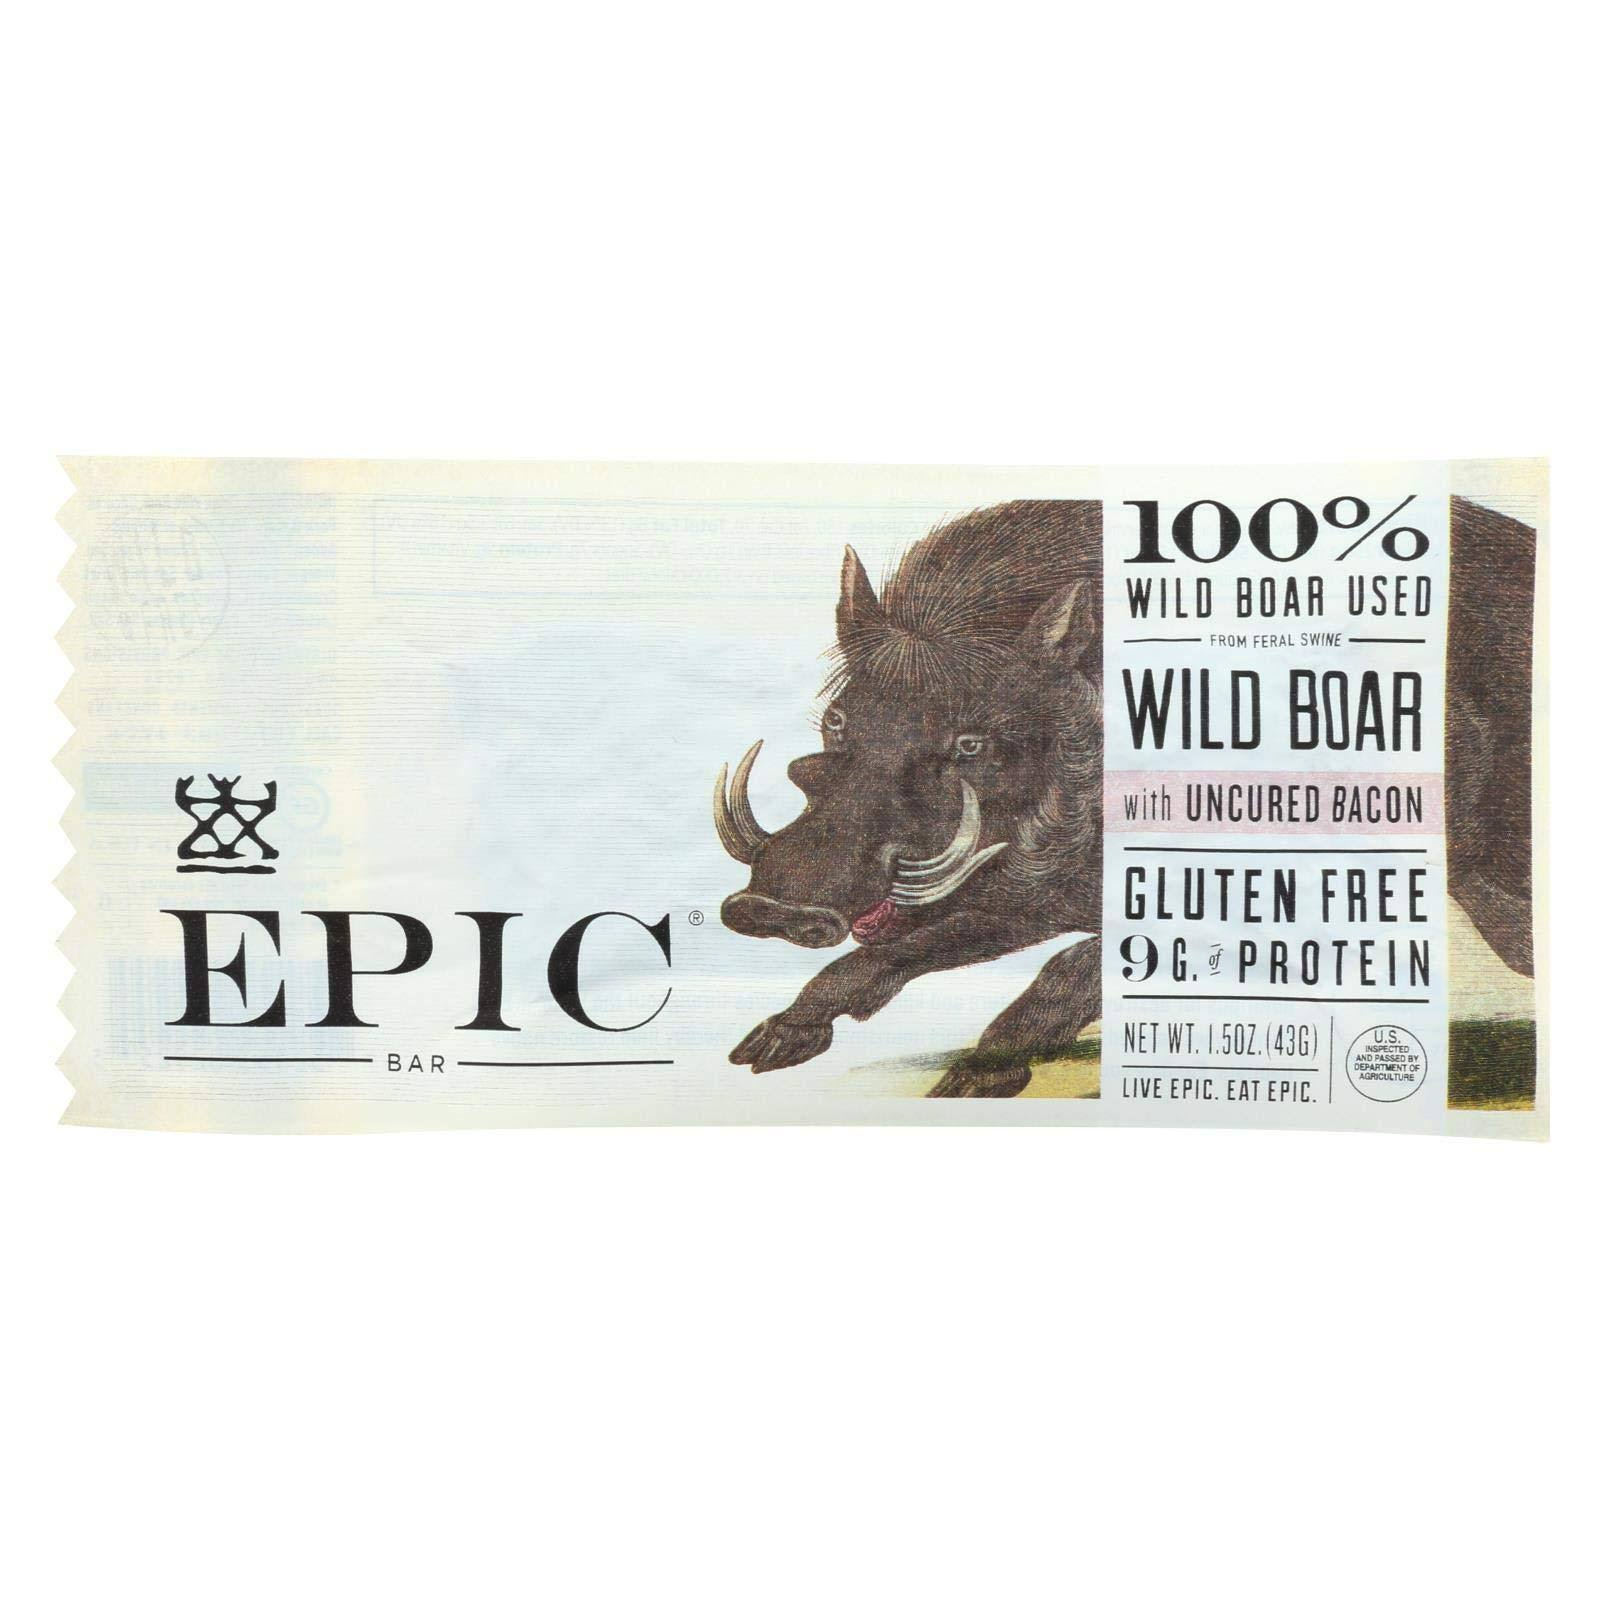 Epic Wild Boar, with Uncured Bacon - 1.5 oz